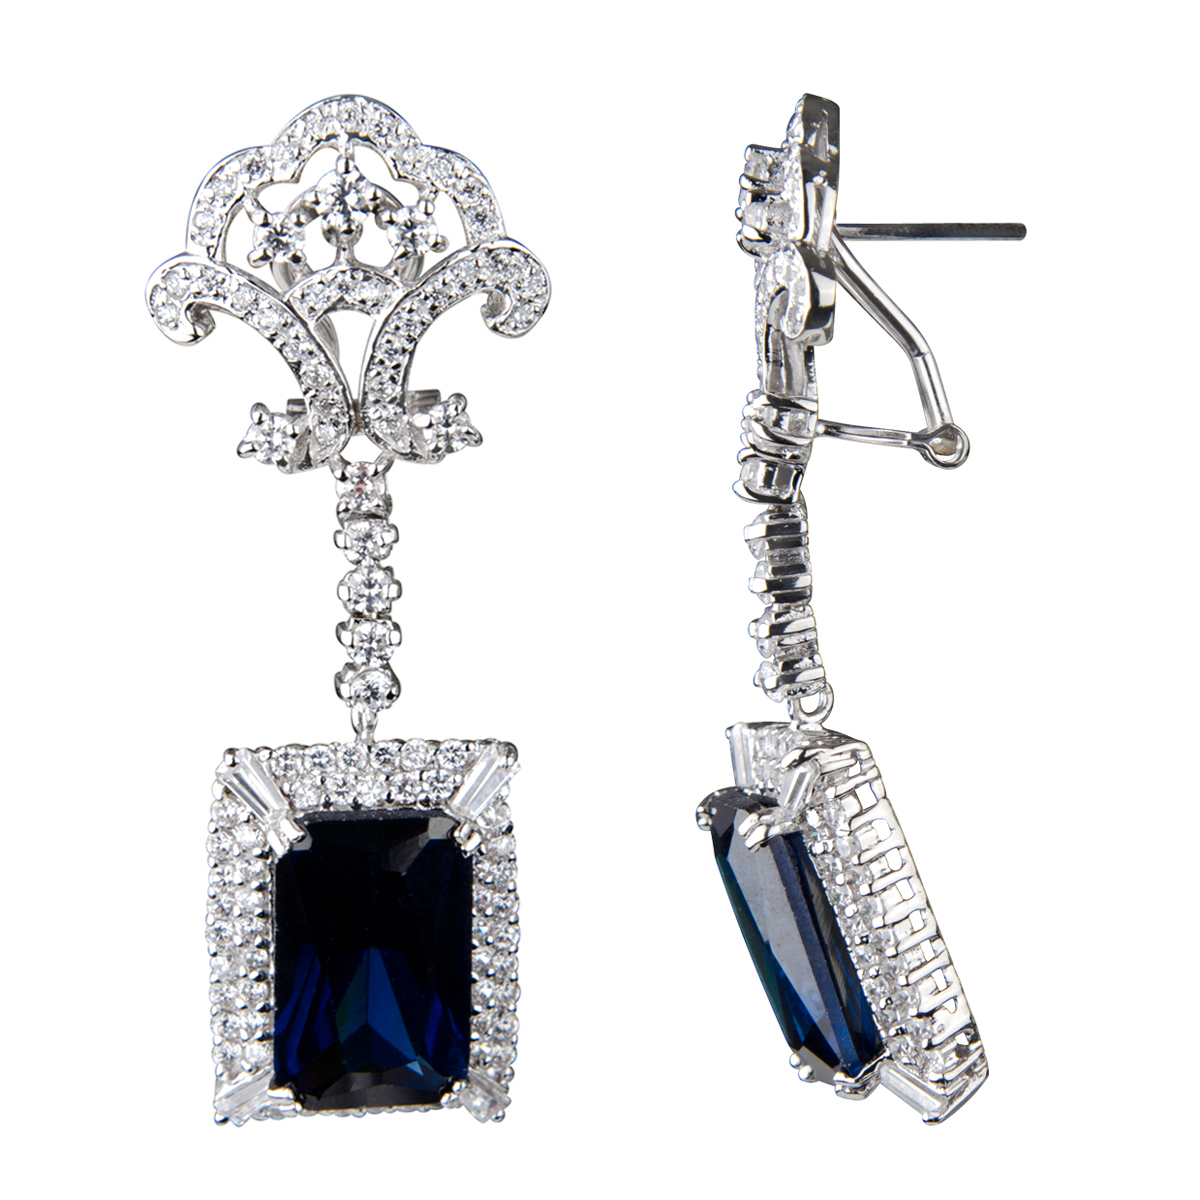 Elizabeth's Estate Jewellery Collection: Simulated Sapphire Drop Earrings   Emerald Cut French Back